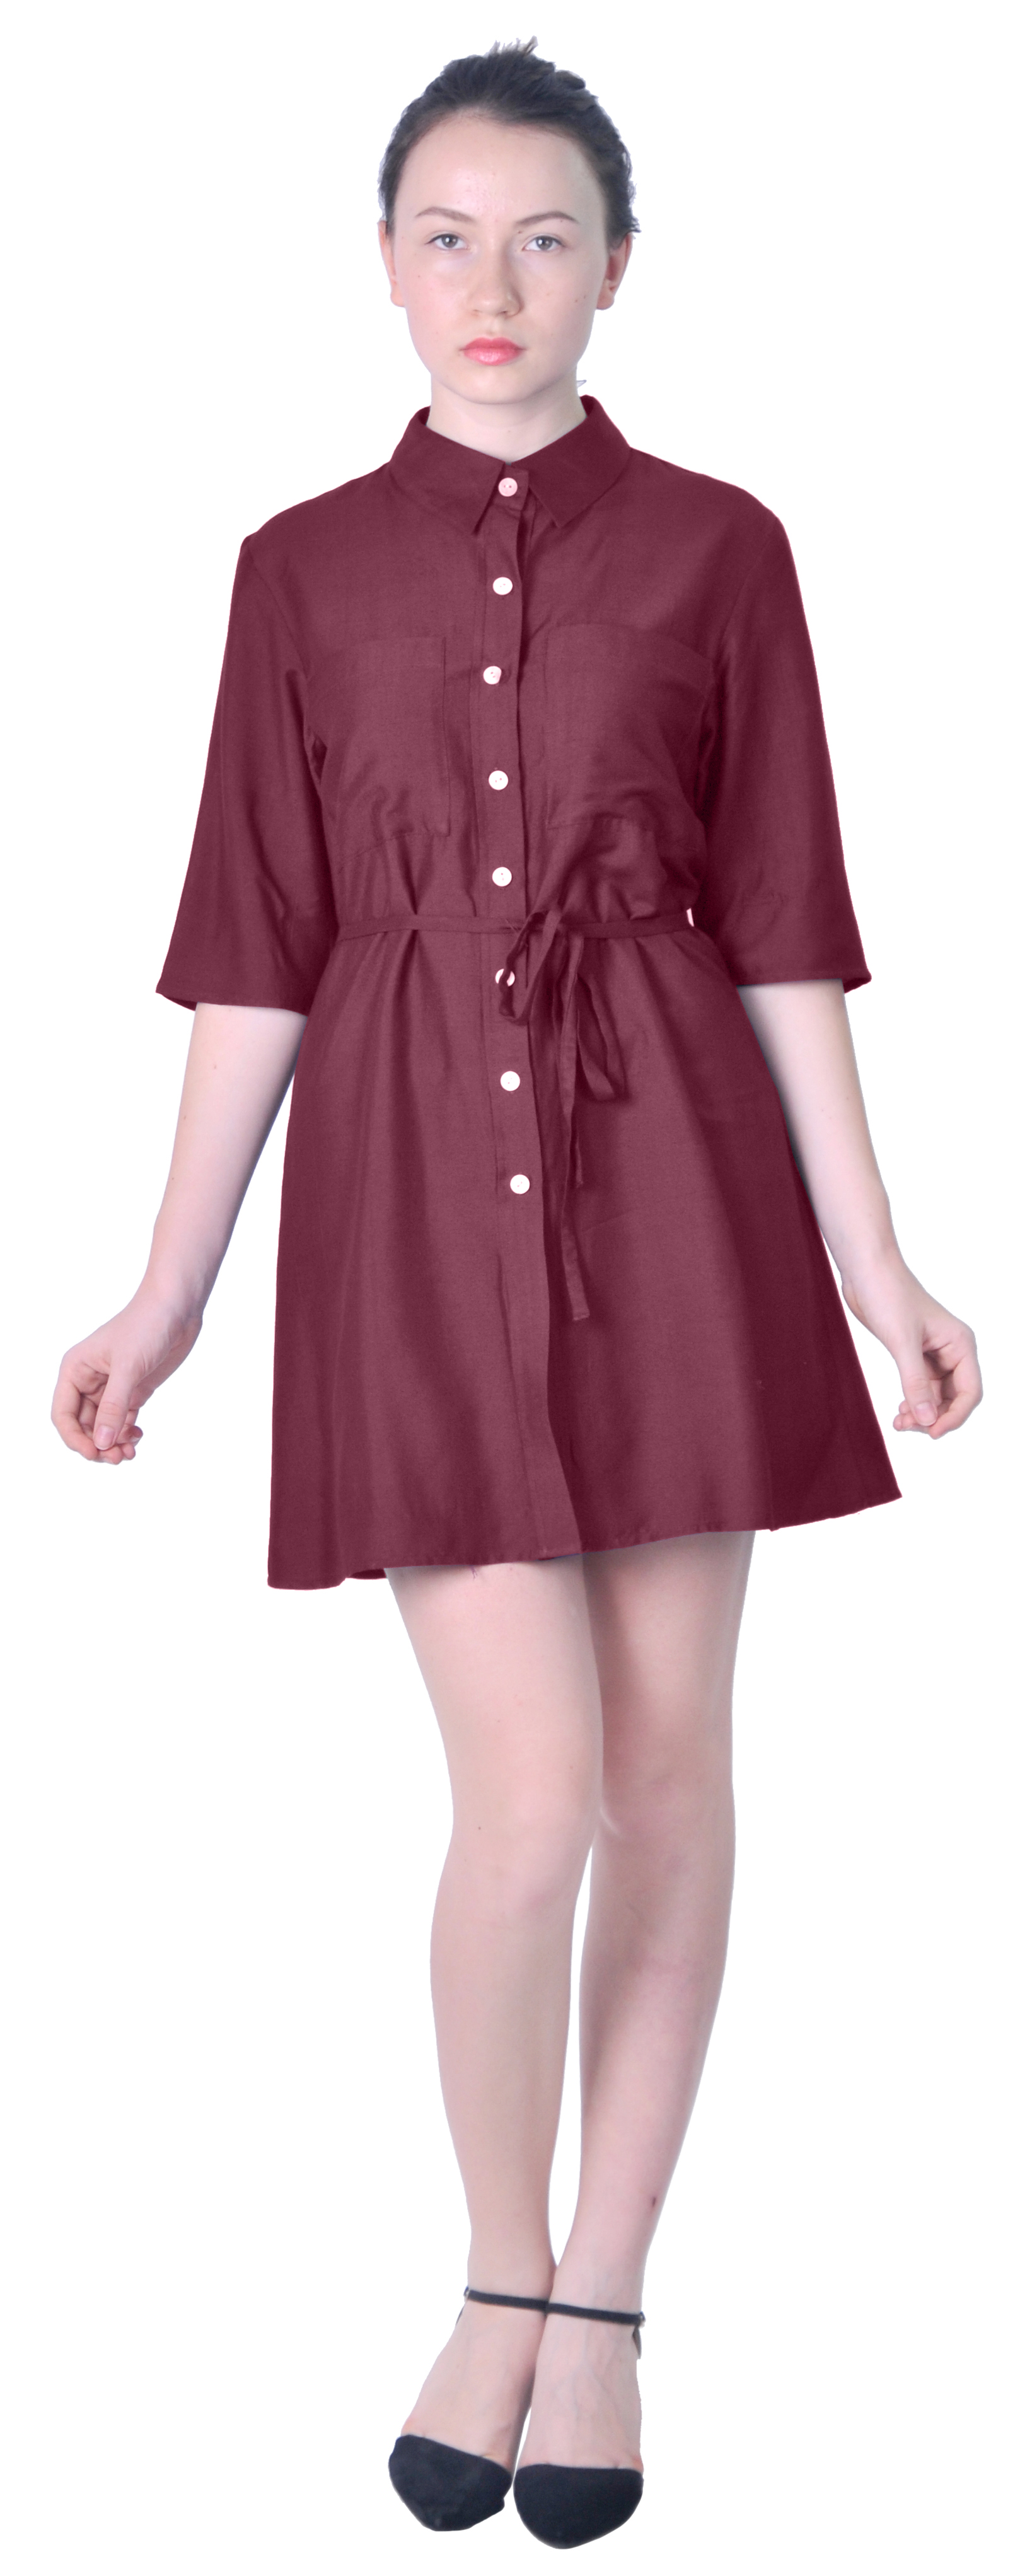 Mary crafts womens casual office shirtdress collared for Women s button down dress shirts